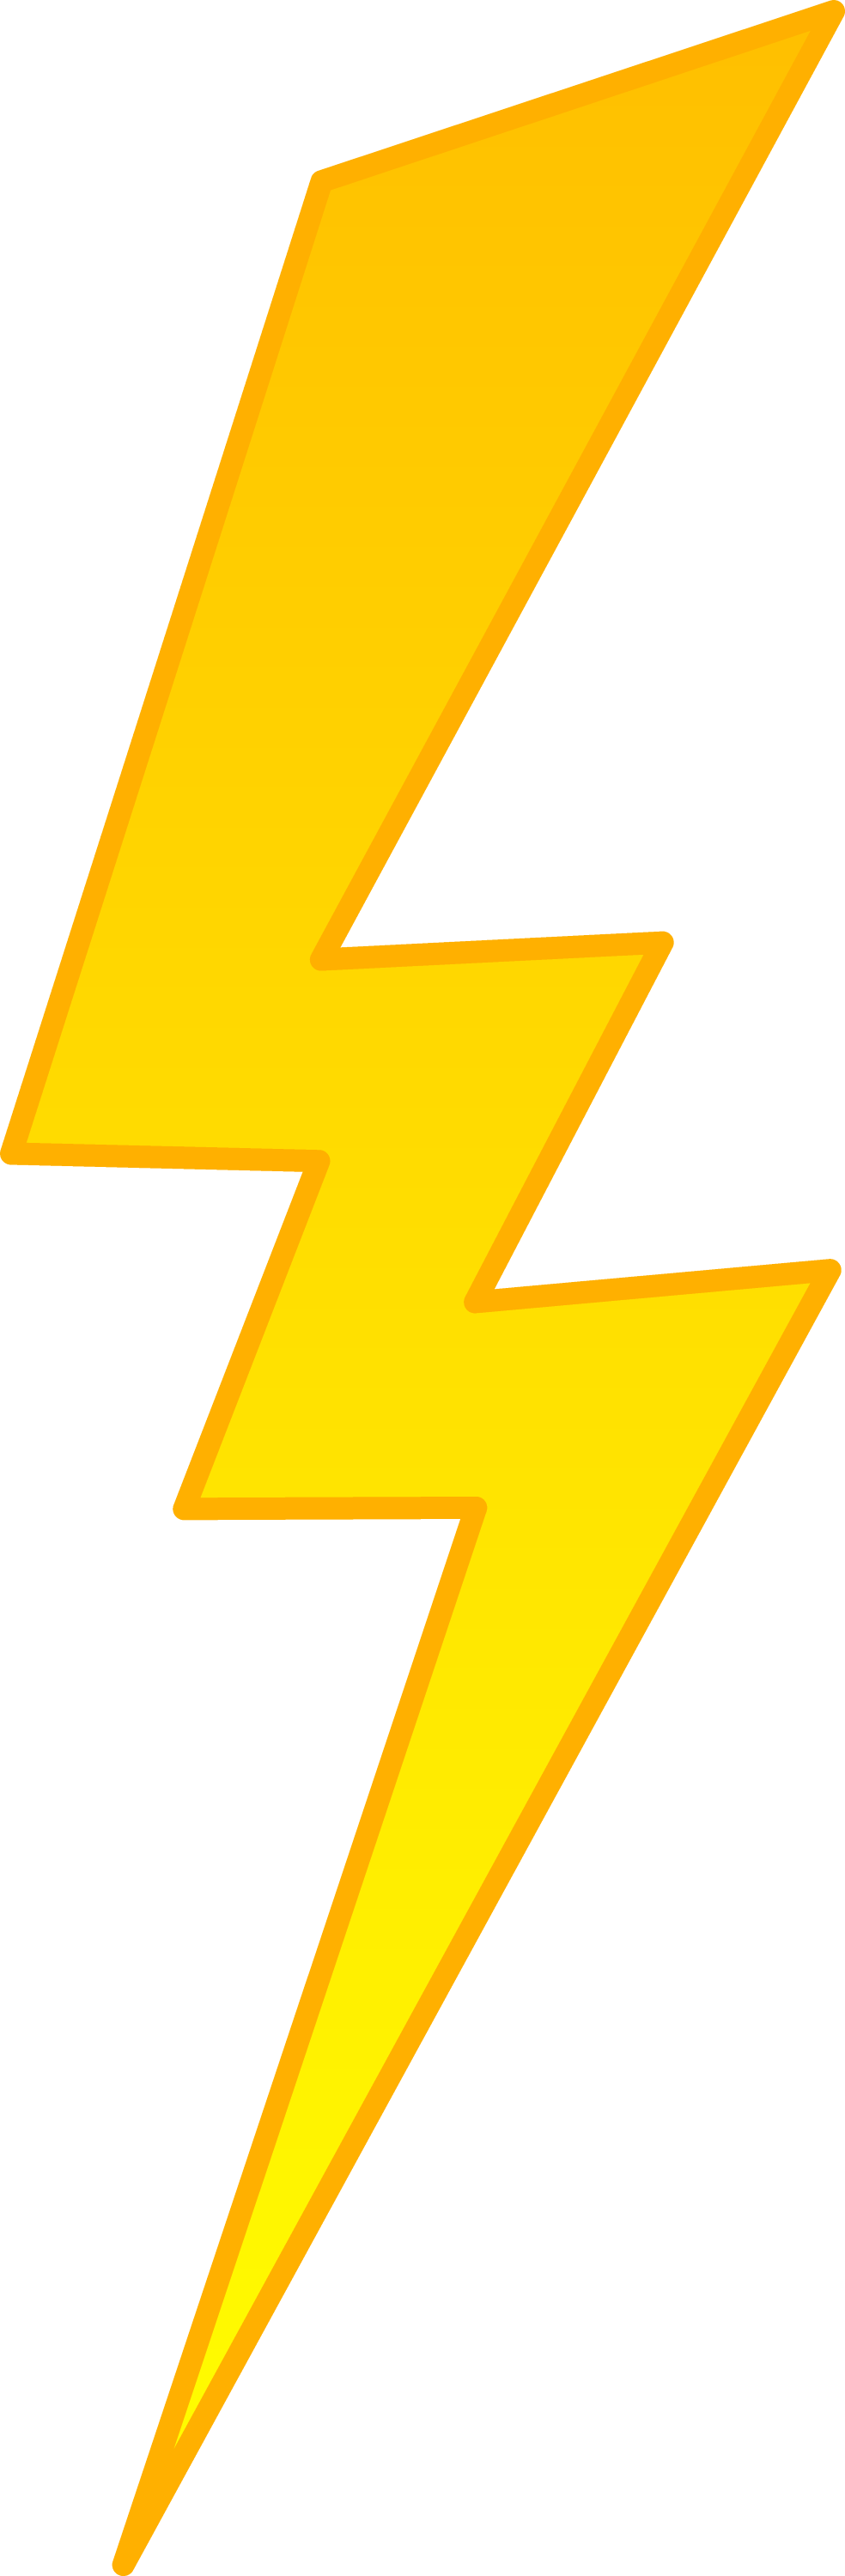 Lighting Bolt Drawings Lightning Bolt Logo Design